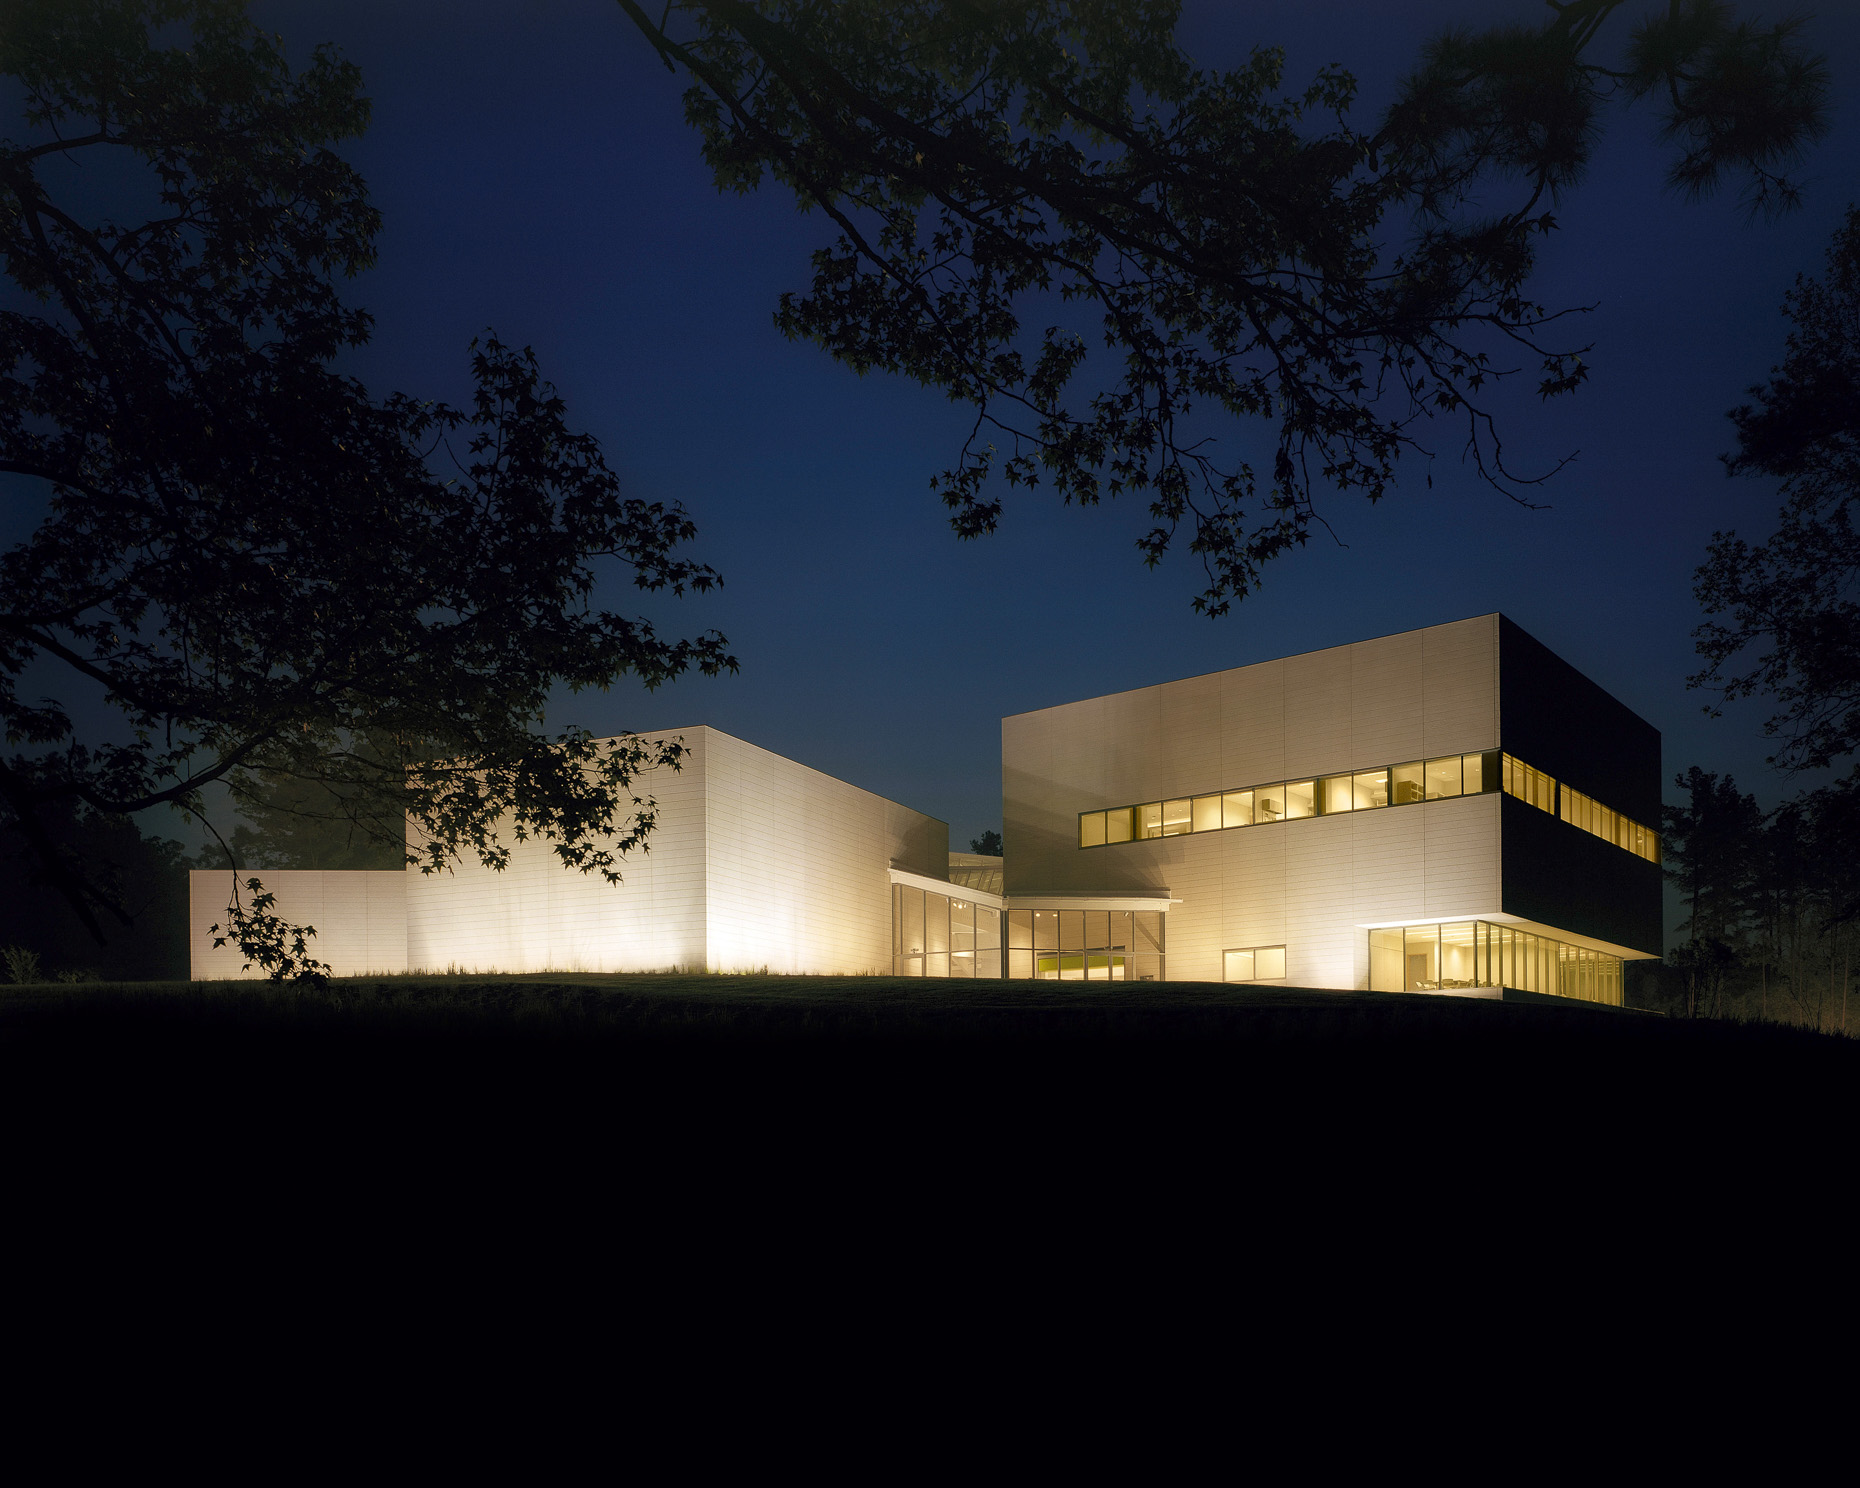 Nasher Museum of Art at Duke University by Rafael Vinoly Architects Photographed by Brad Feinknopf based in Columbus, Ohio